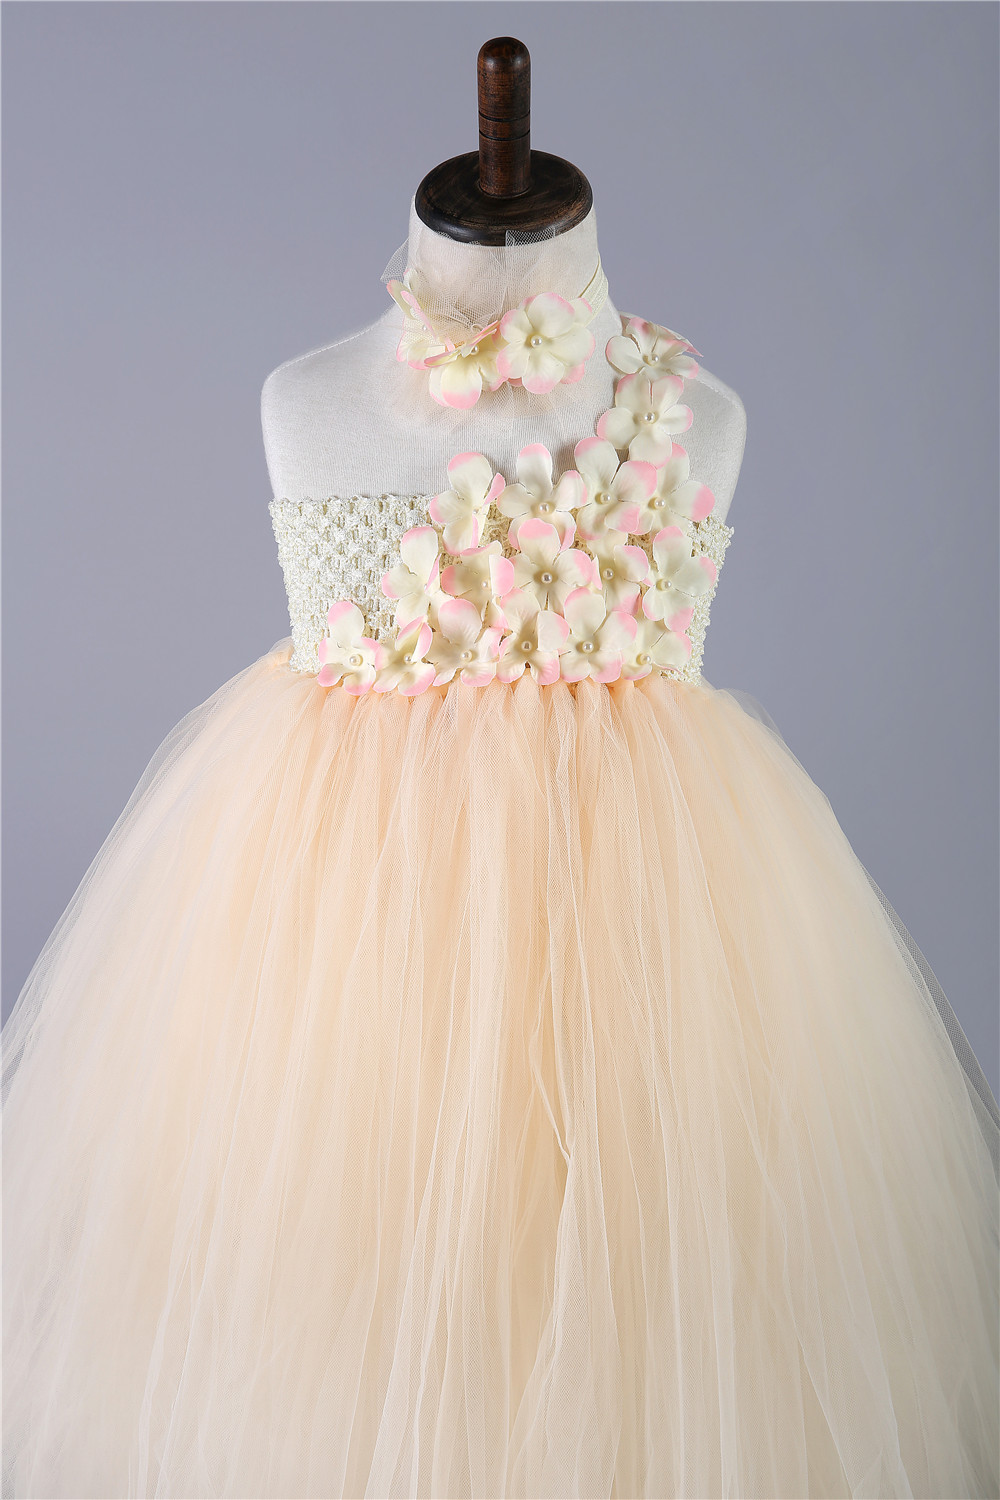 8676b5d0291 Tulle Girls Tutu Dress Champagne Baby Bridesmaid Flower Girl Wedding Dress  Kids Party Birthday Evening Prom Ball Gown Clothes